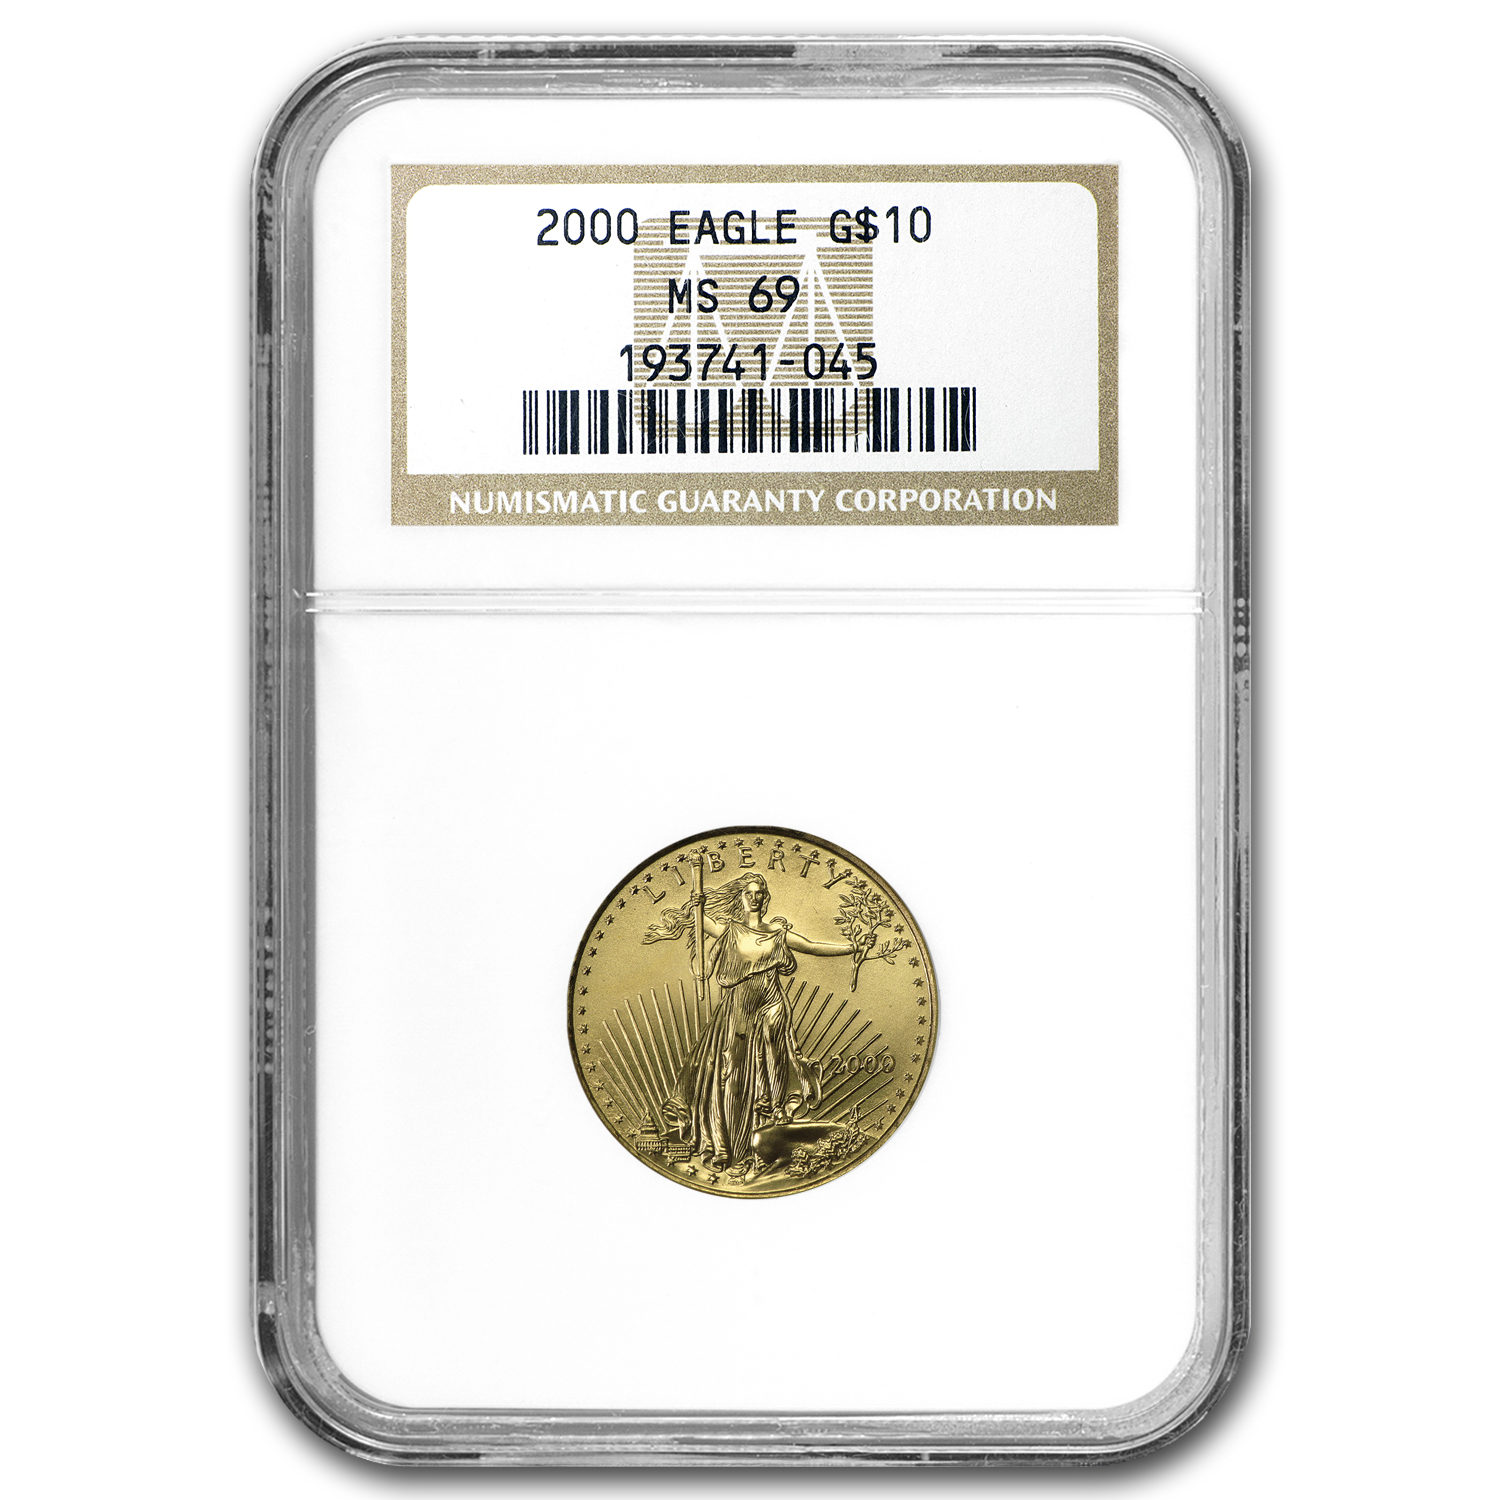 2000 1/4 oz Gold American Eagle MS-69 NGC